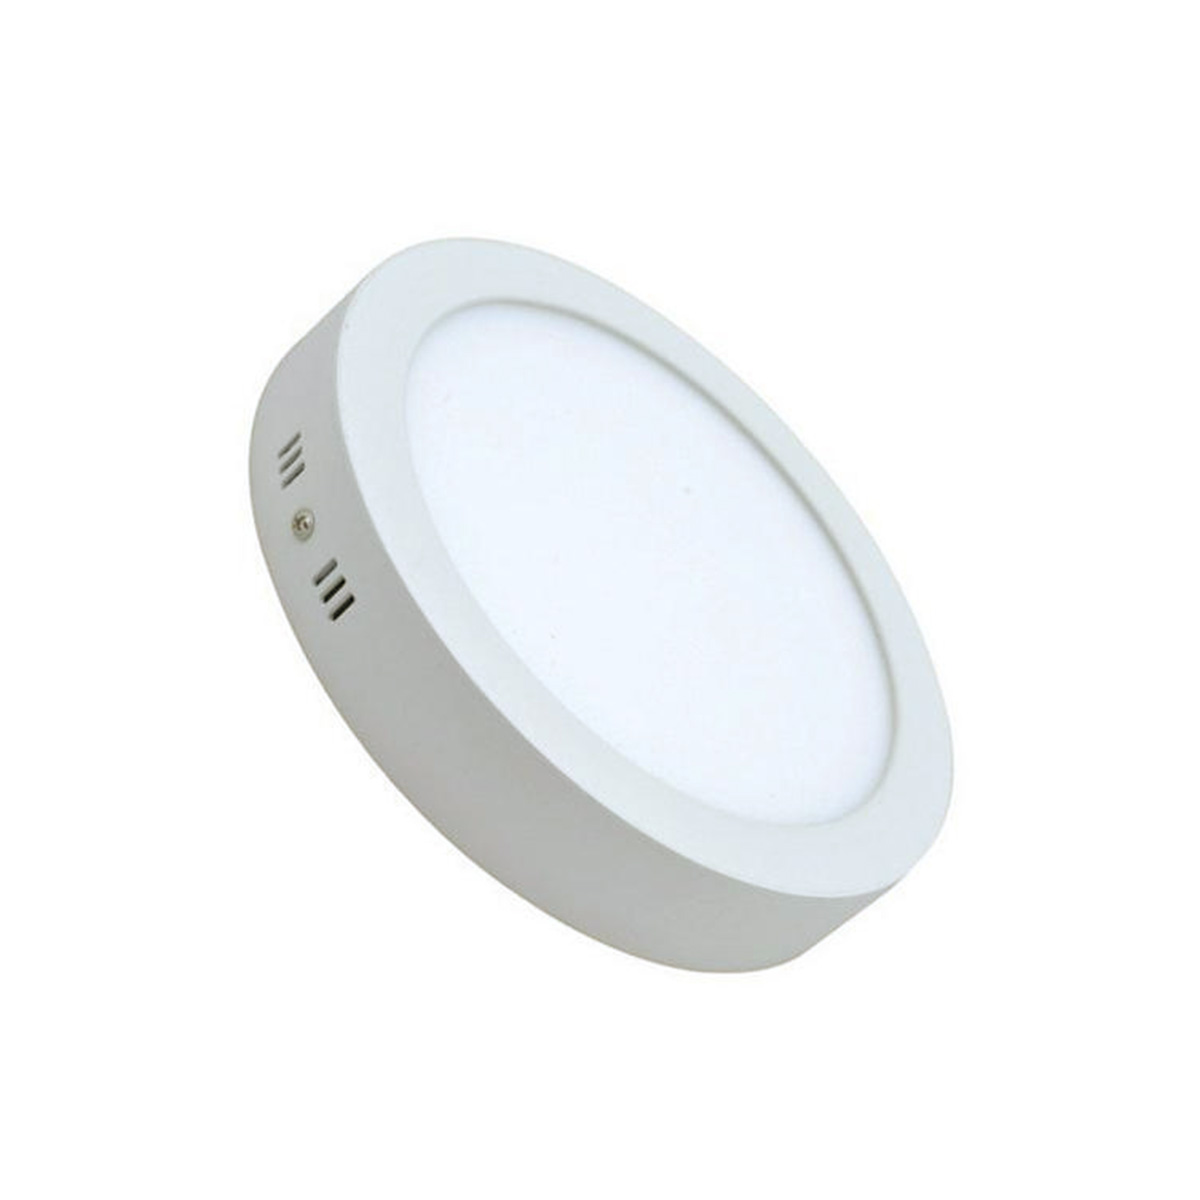 Nadgradni Led panel MH-CHJ-220 -12W